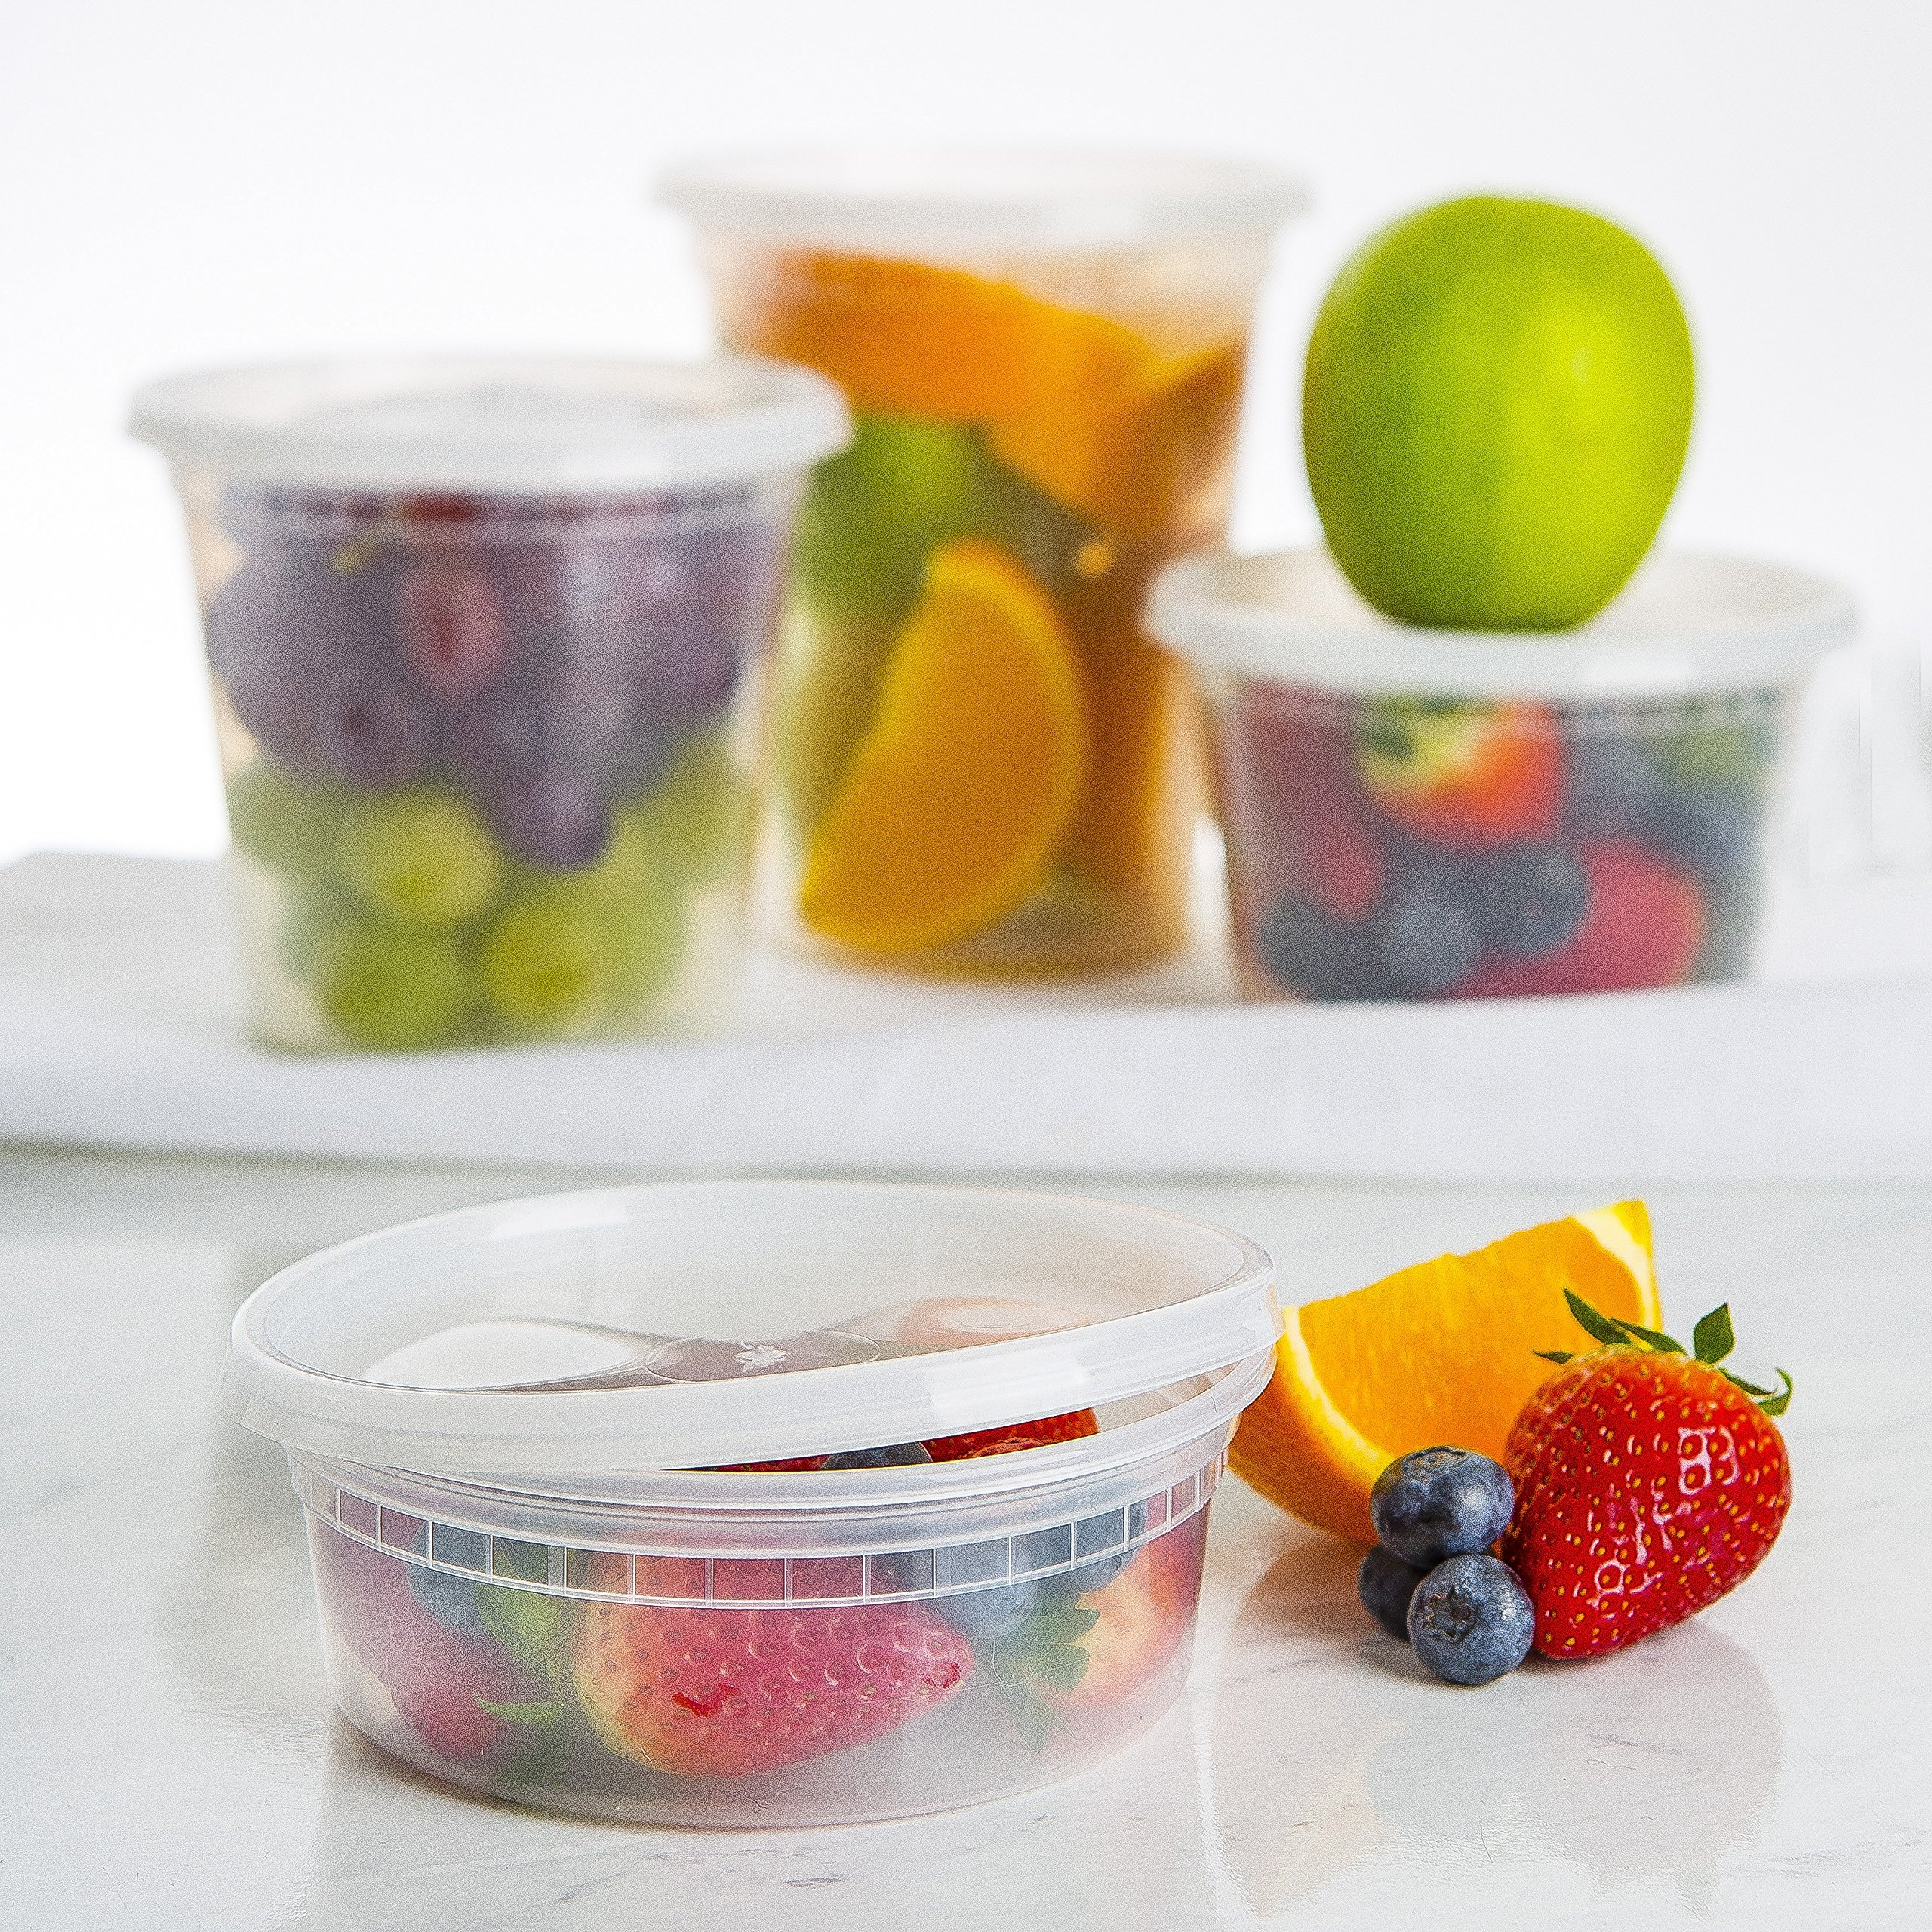 50pk 8oz Small Plastic Containers with Lids - Slime Containers with lids Freezer Containers Deli Containers with Lids - Food Containers Meal Prep Food Prep Containers Plastic Food Containers with Lids by Prep Naturals (Image #3)